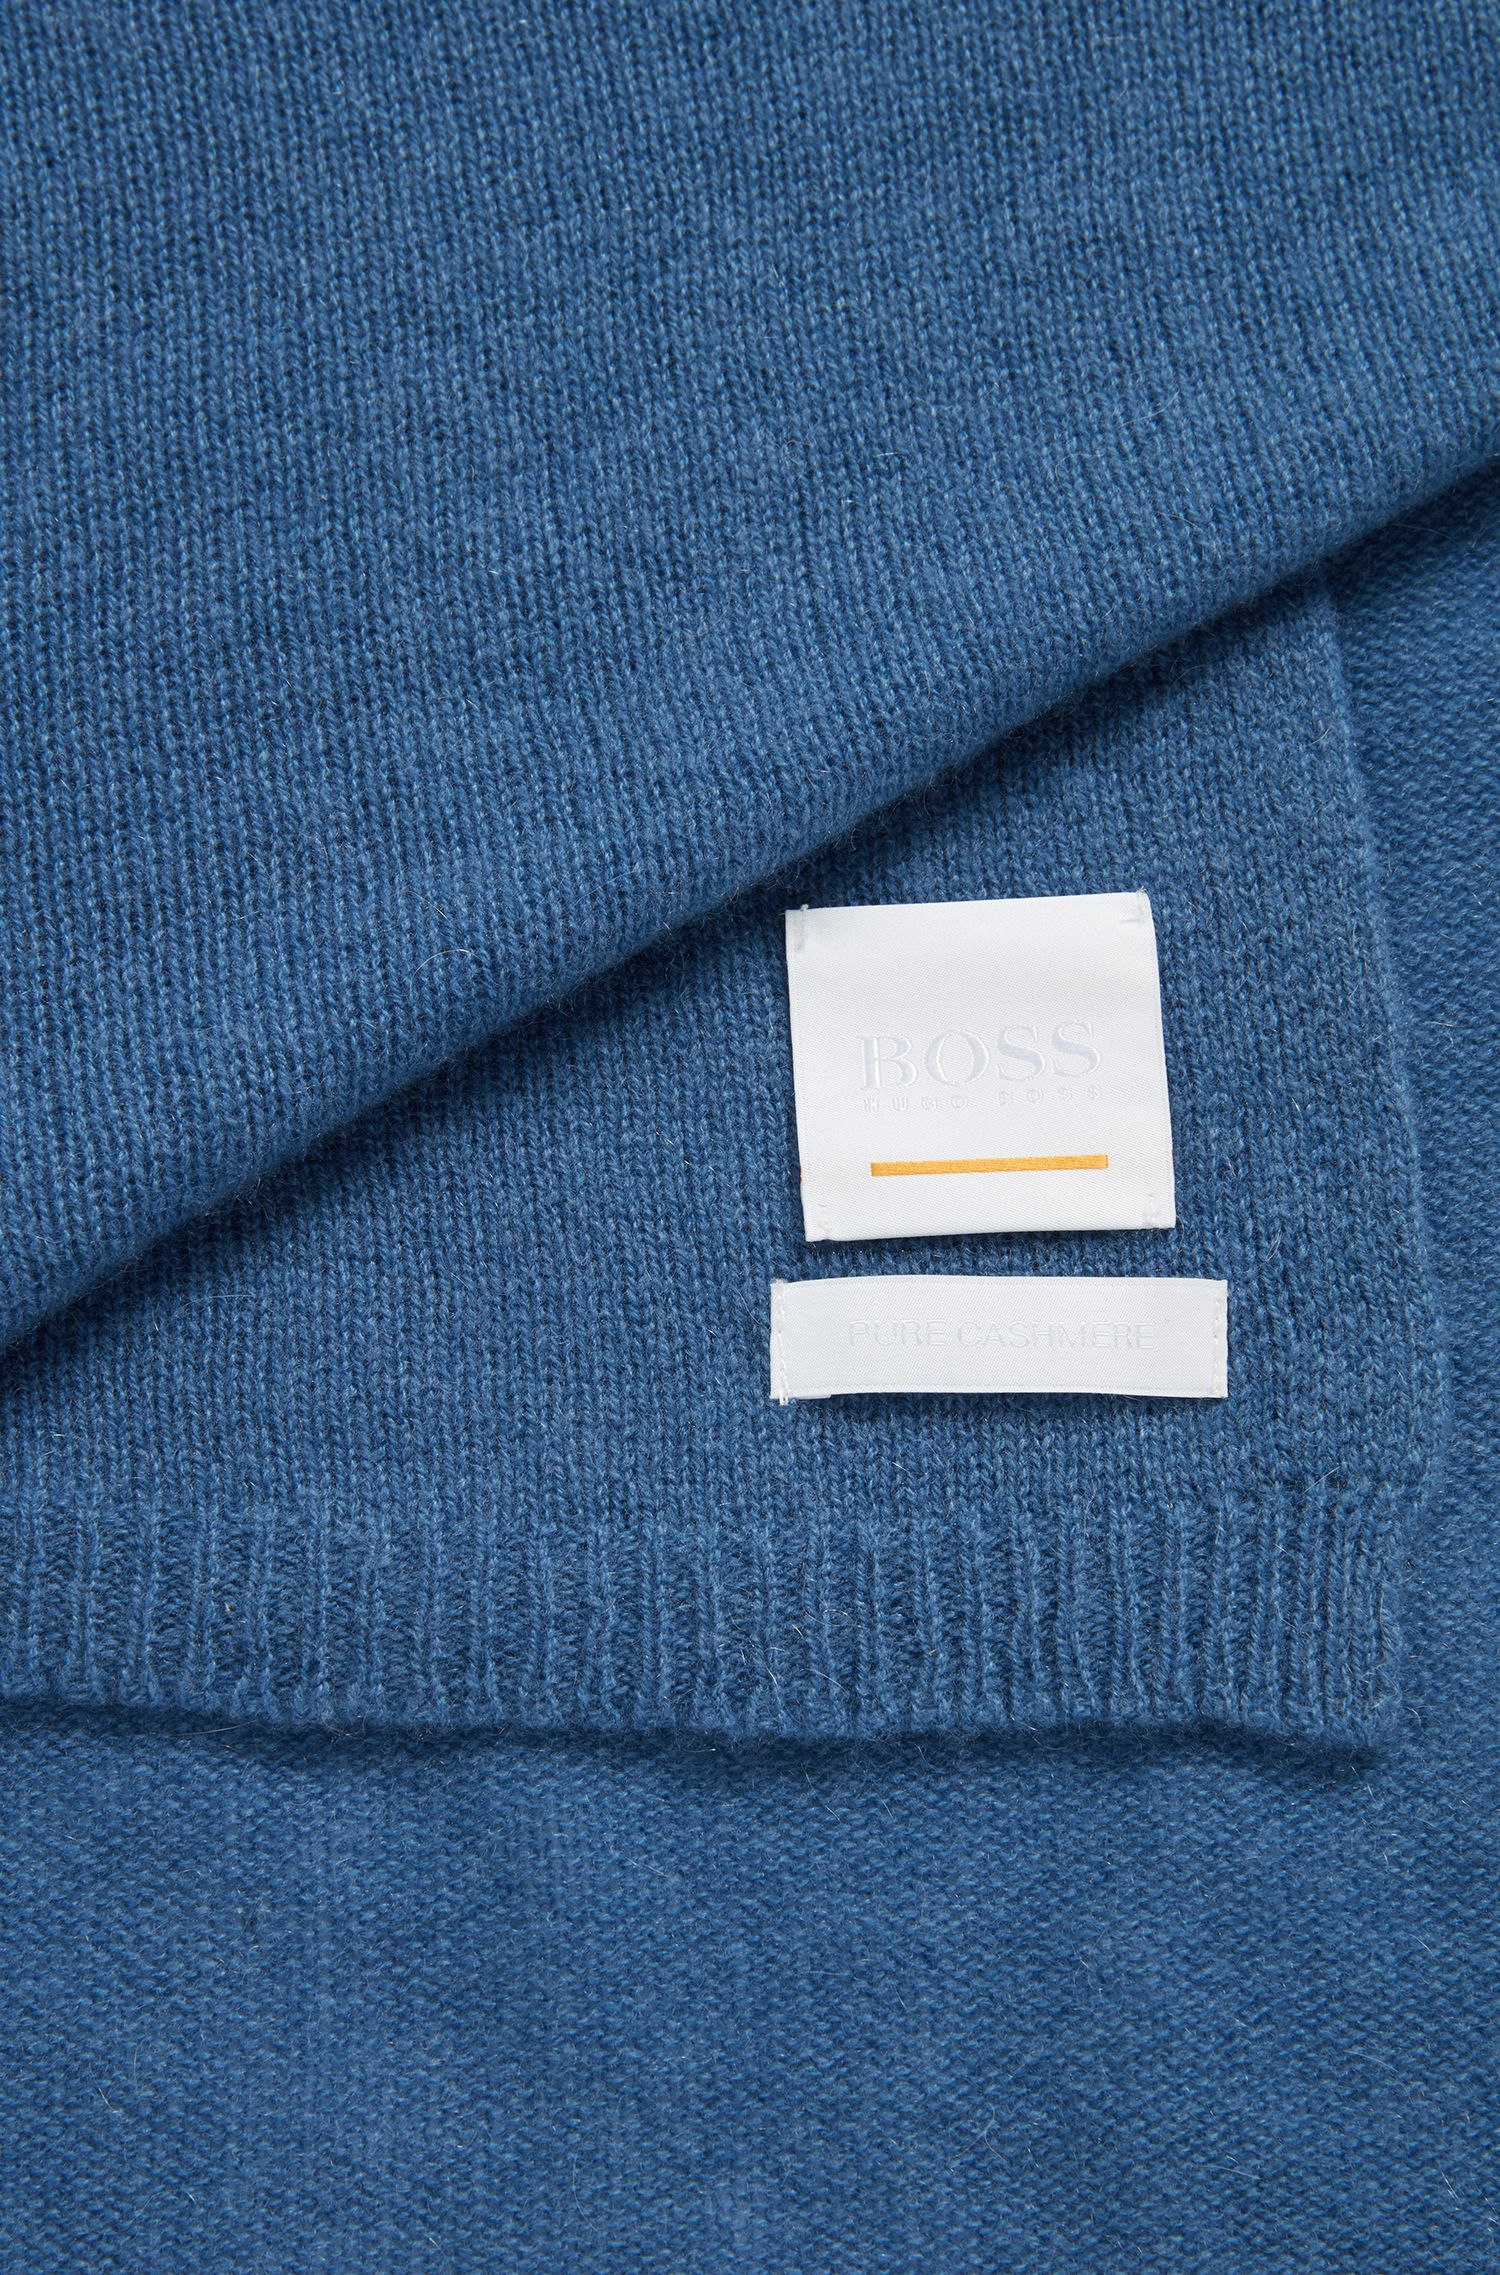 Cashmere scarf with logo label, Silver